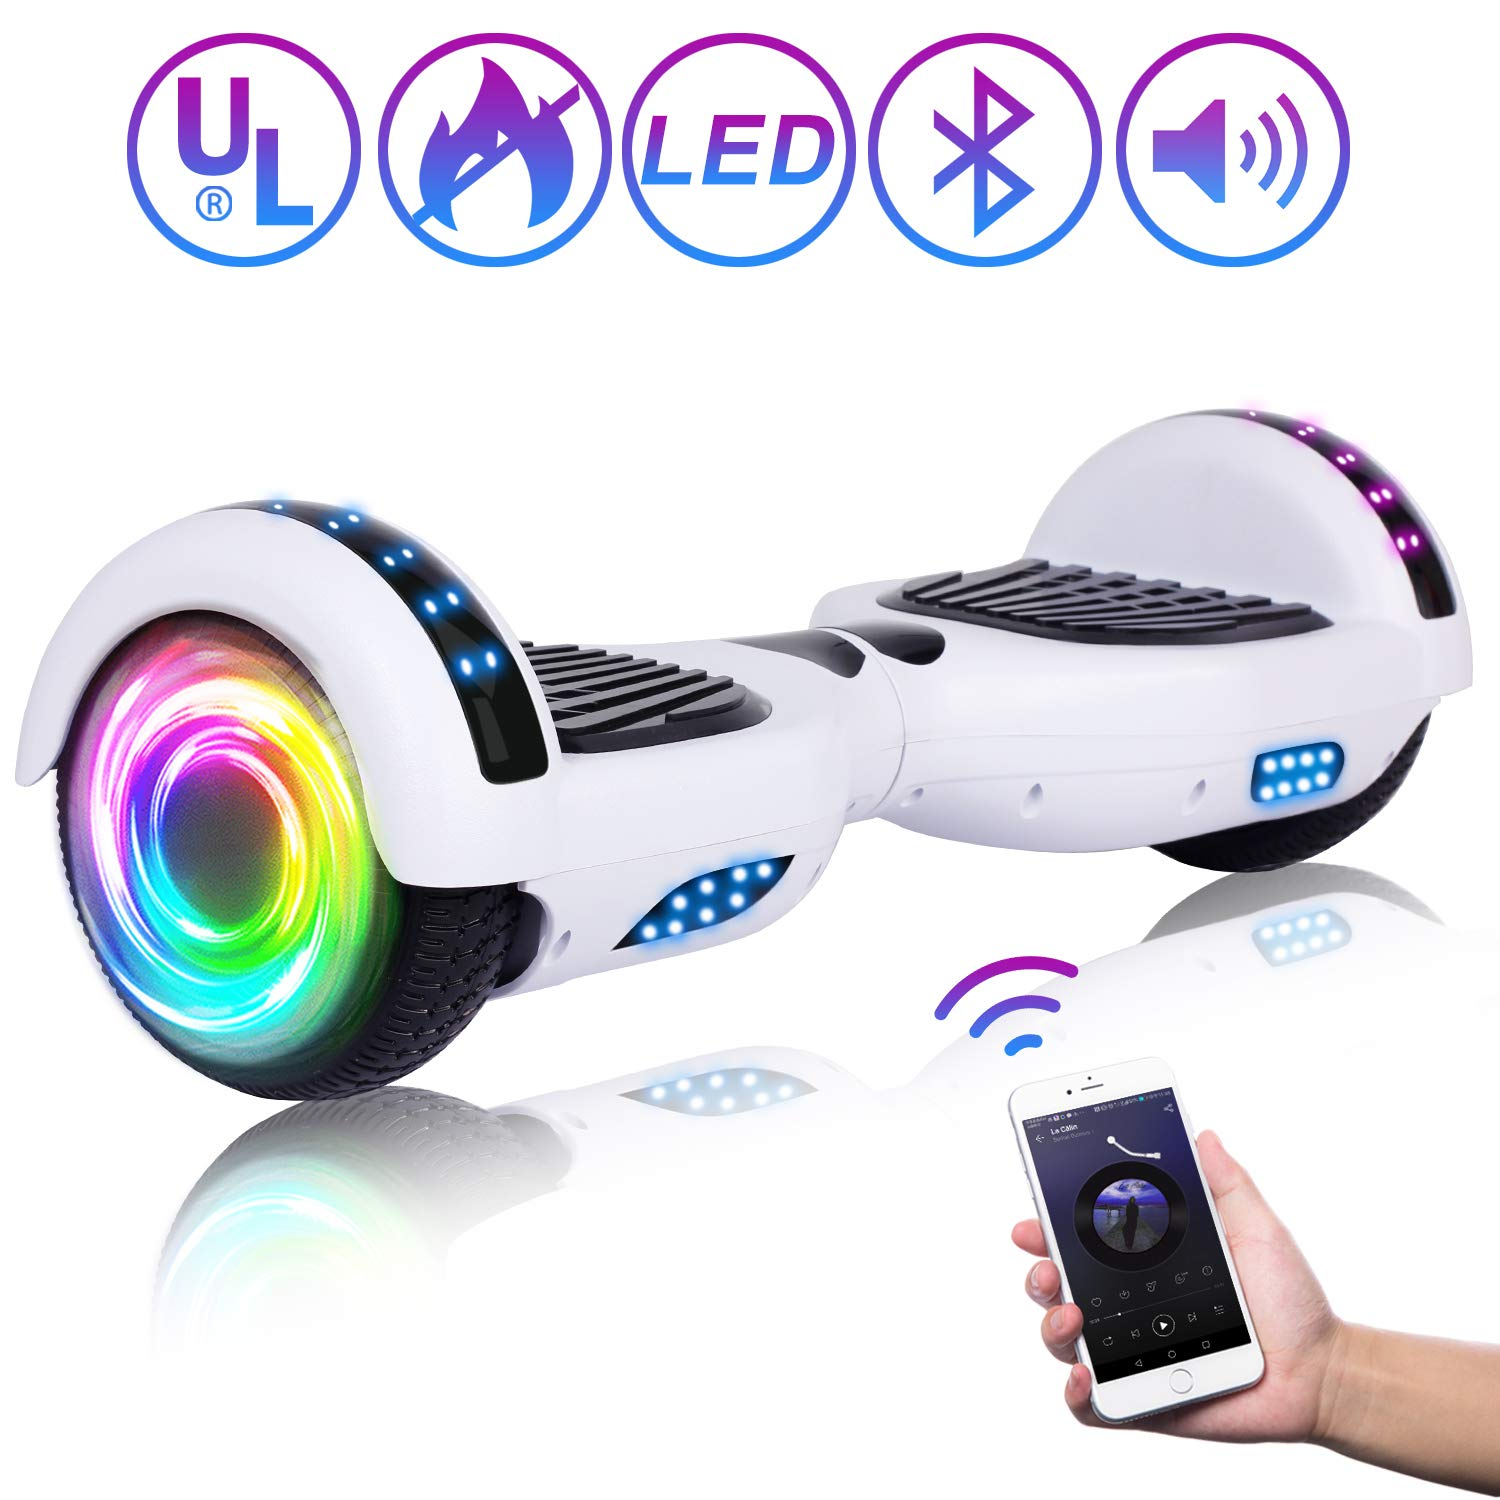 SISIGAD Hoverboard 6.5'' Self Balancing Scooter with Colorful LED Wheels Lights Two-Wheels self Balancing Hoverboard Dual 300W Motors Hover Board UL2272 Certified by SISIGAD